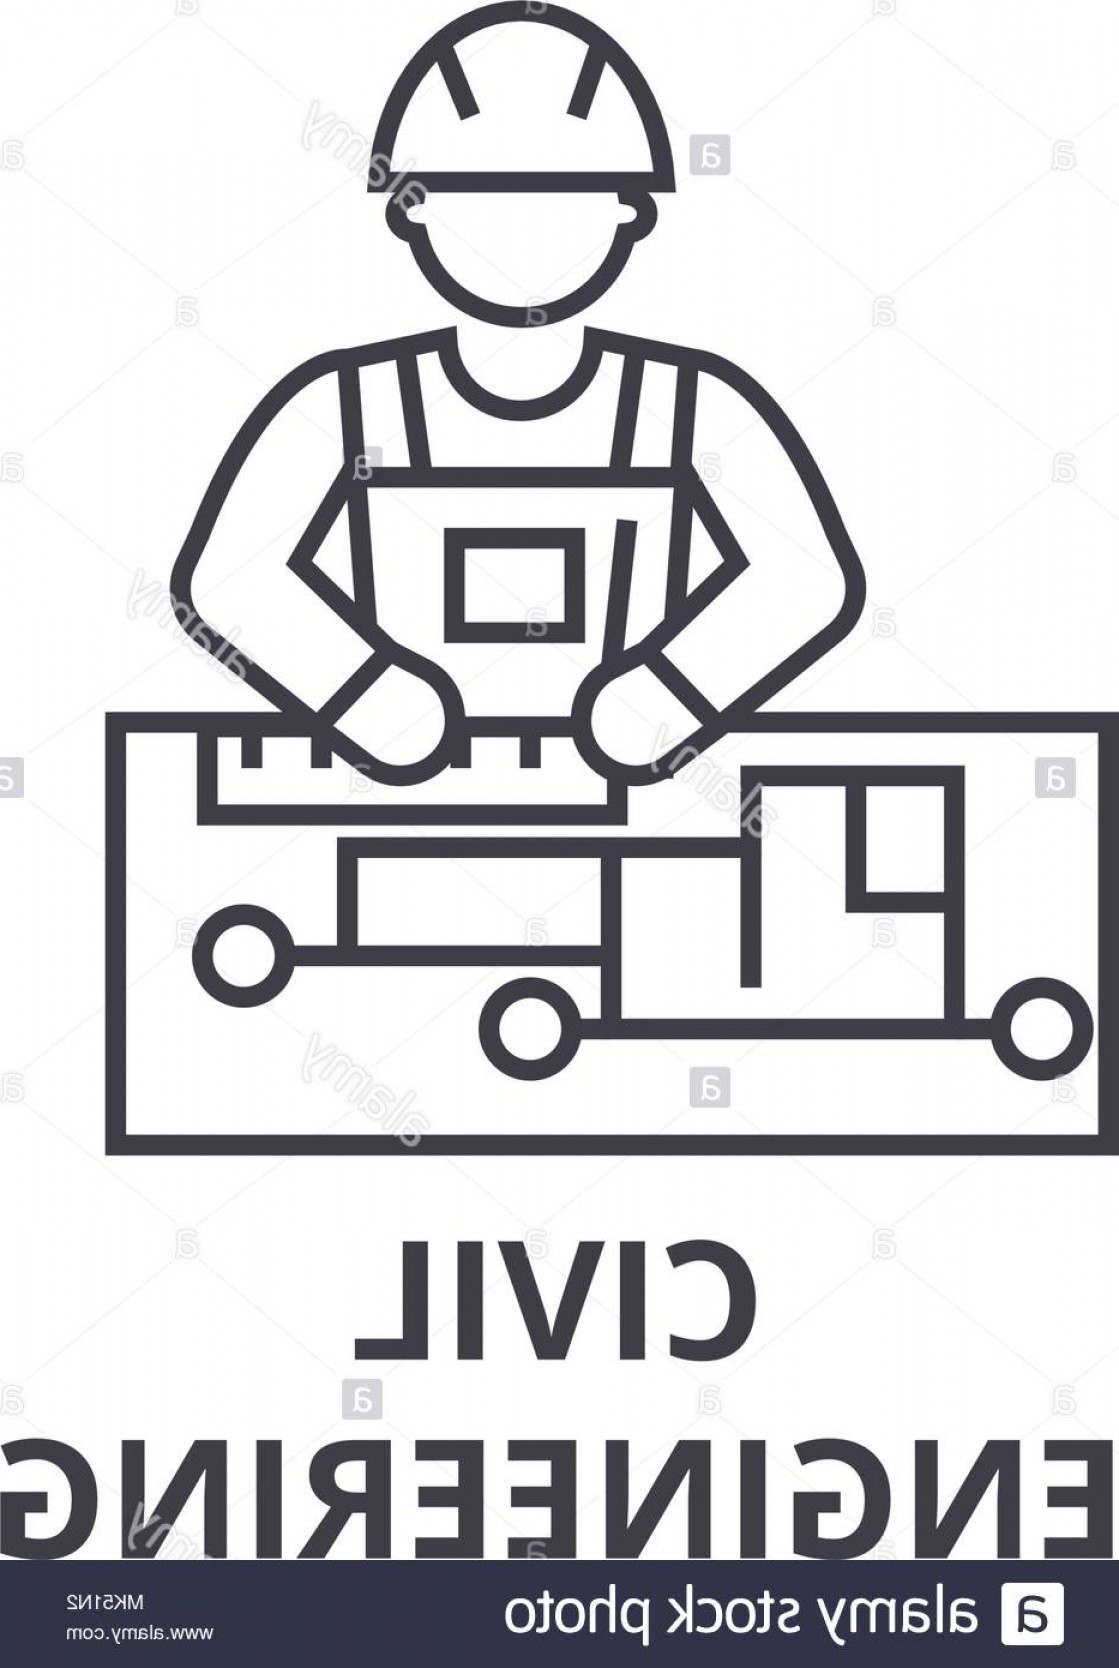 Vector Graphic Of Civil Engineering: Civil Engineering Vector Line Icon Sign Illustration On Background Editable Strokes Image